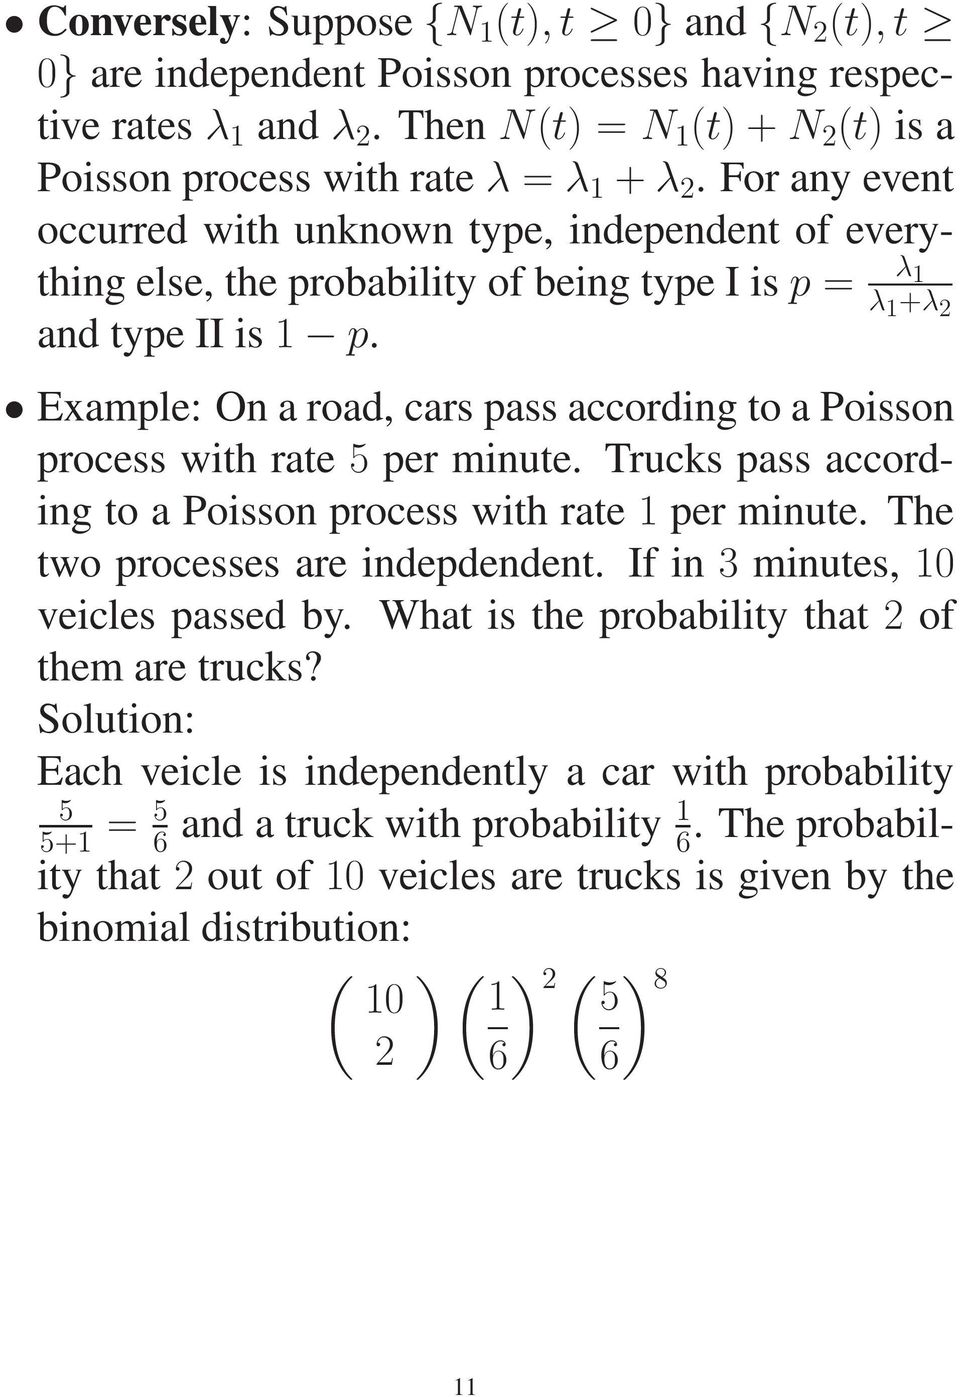 Example: On a road, cars pass according to a Poisson process with rate 5 per minute. Trucks pass according to a Poisson process with rate 1 per minute. The two processes are indepdendent.